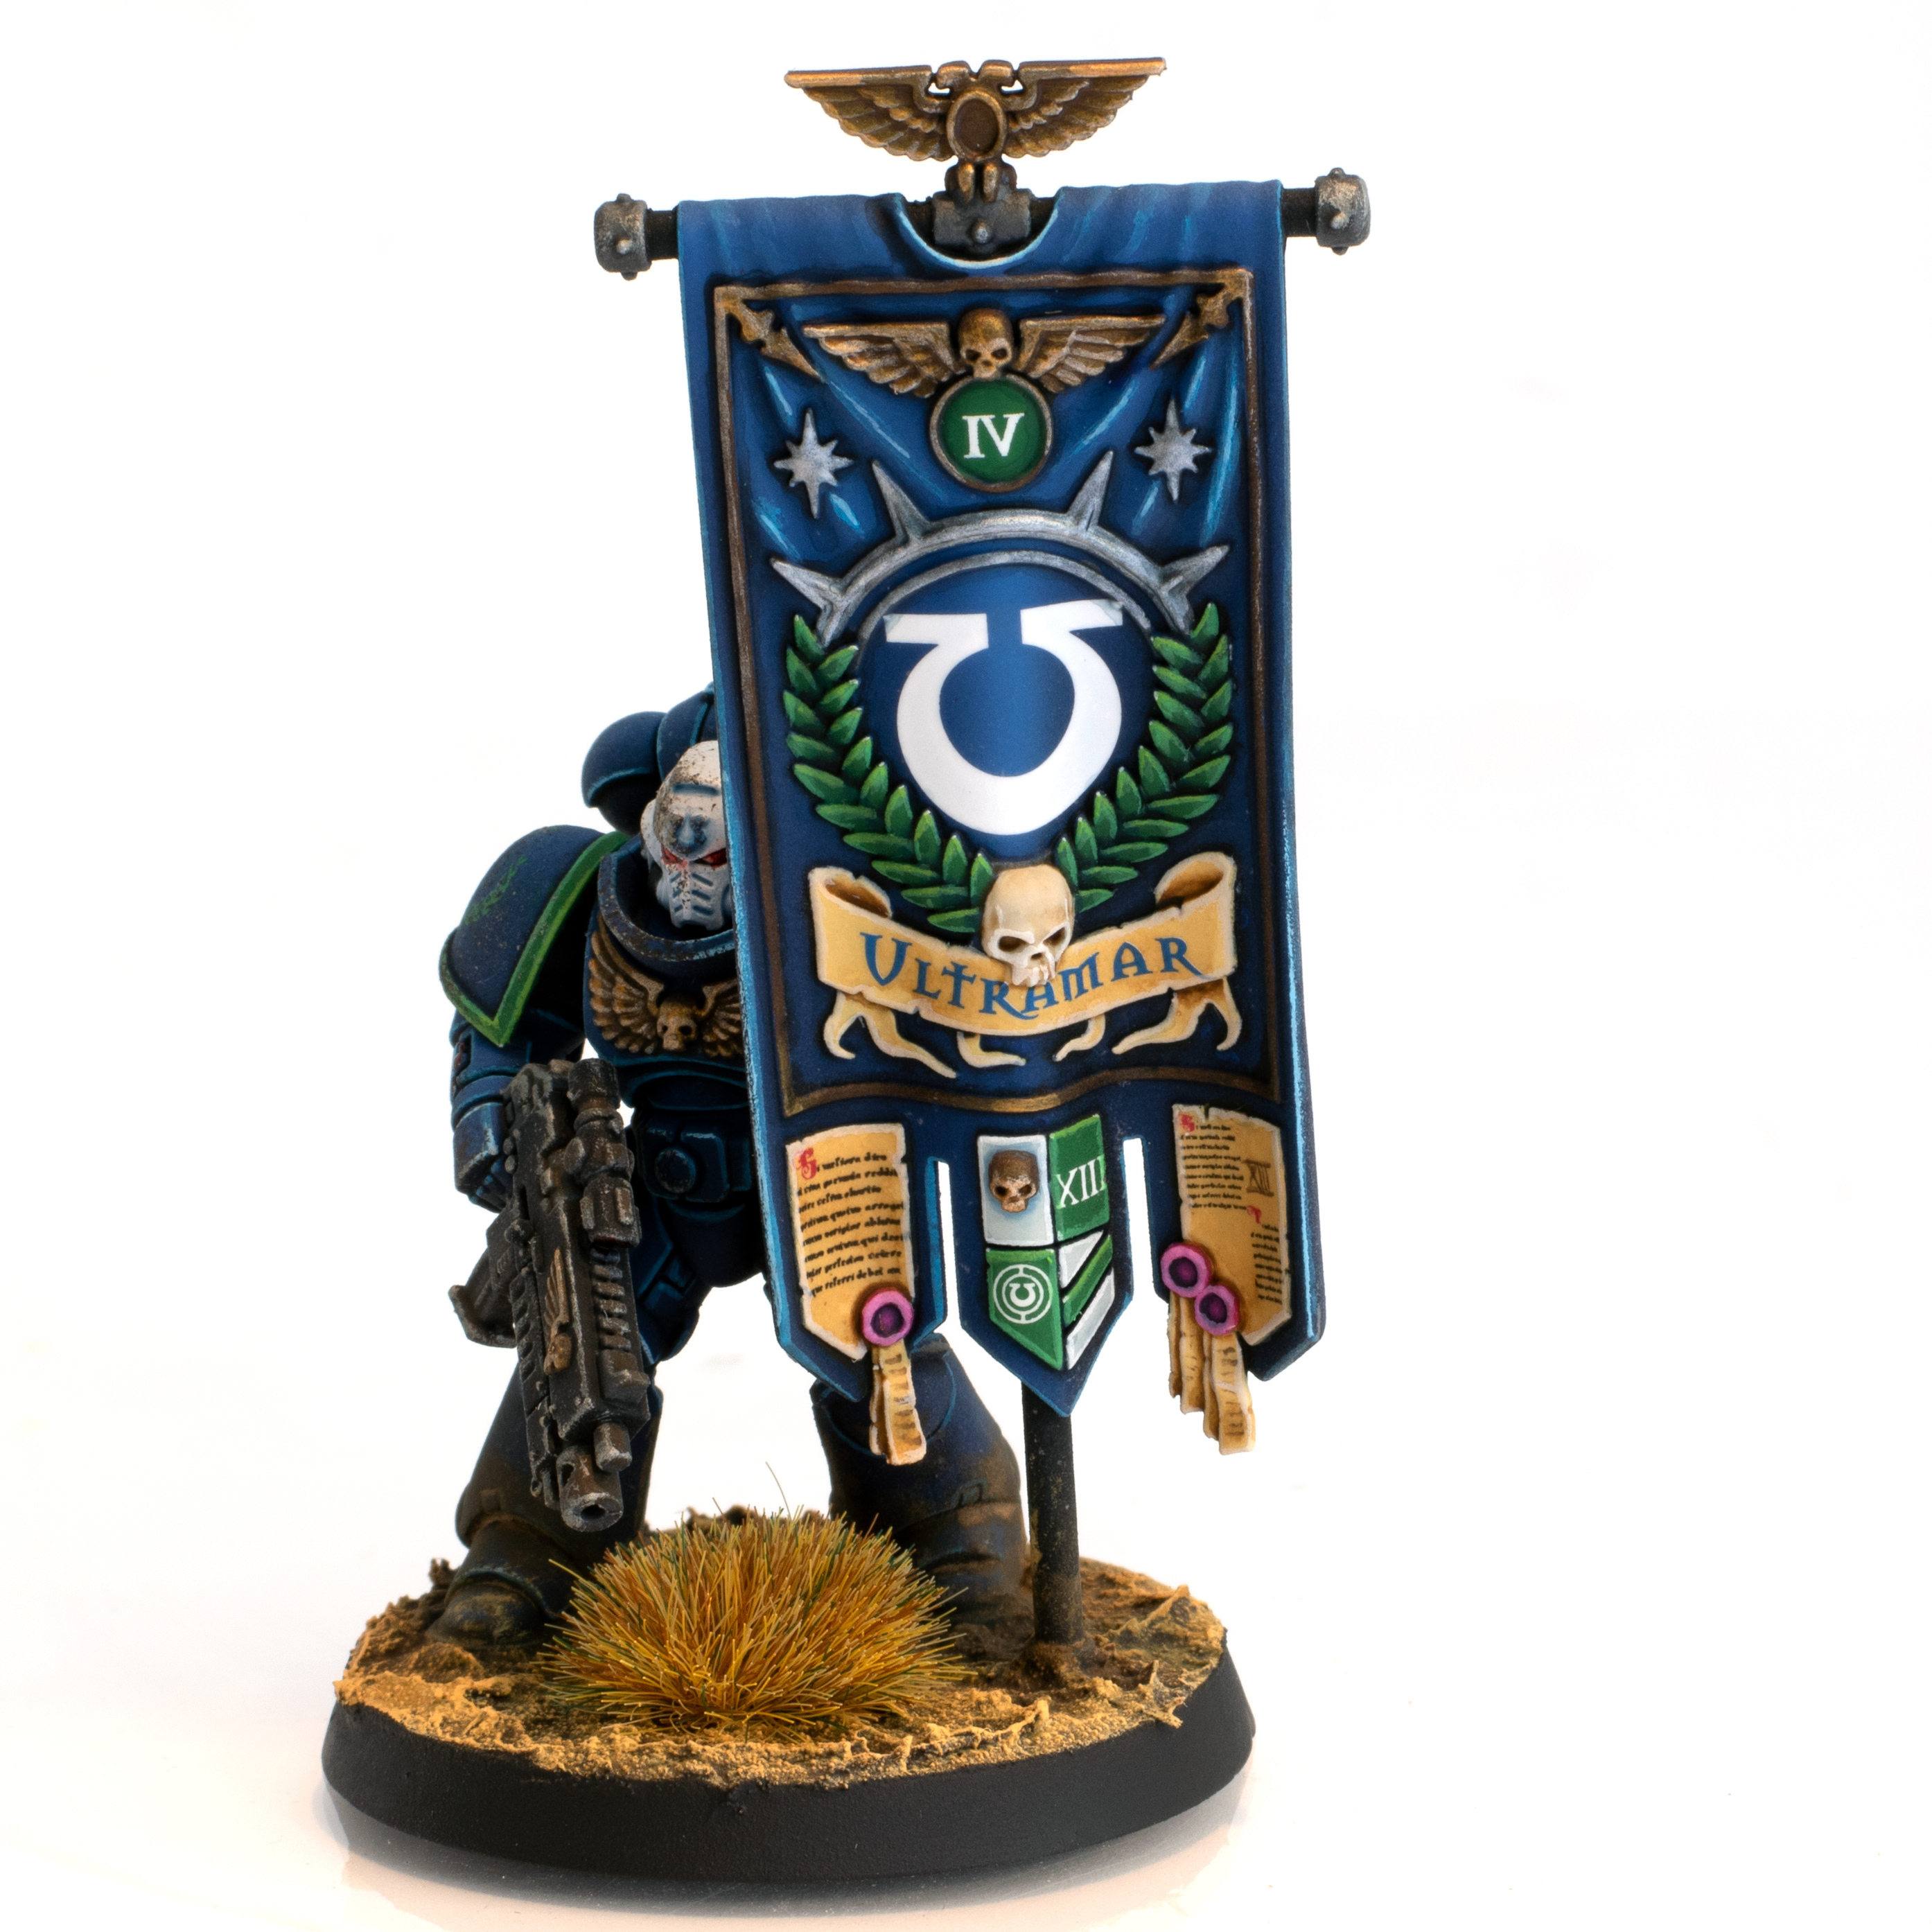 Ultramarines 4th Company Primaris Ancient